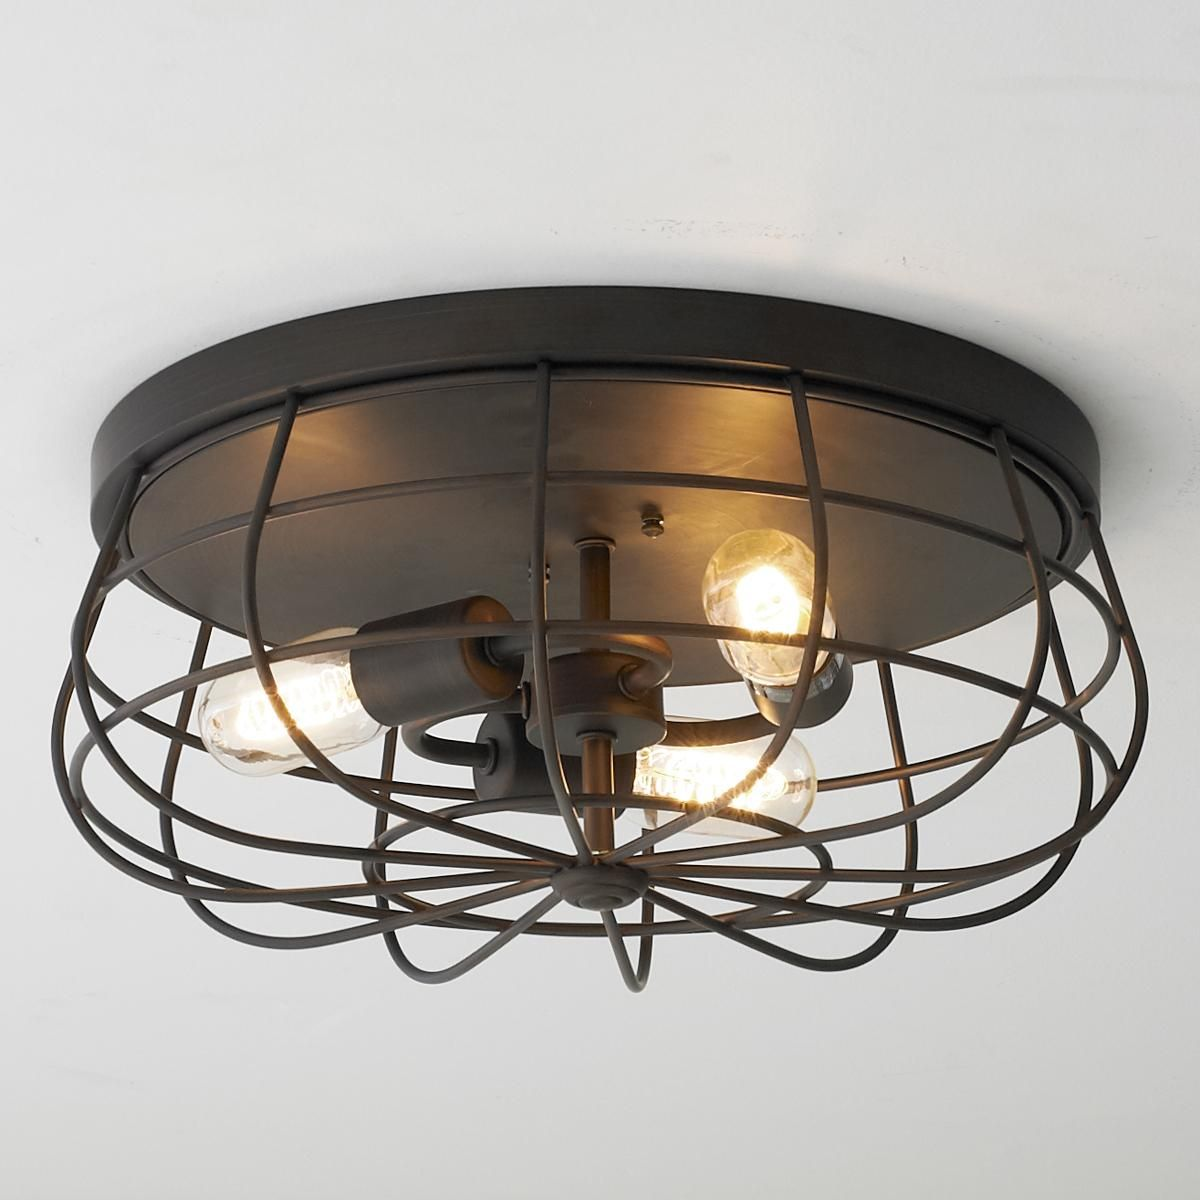 Childrens Ceiling Fans Industrial Cage Ceiling Light In 2019 Ceiling Lights For